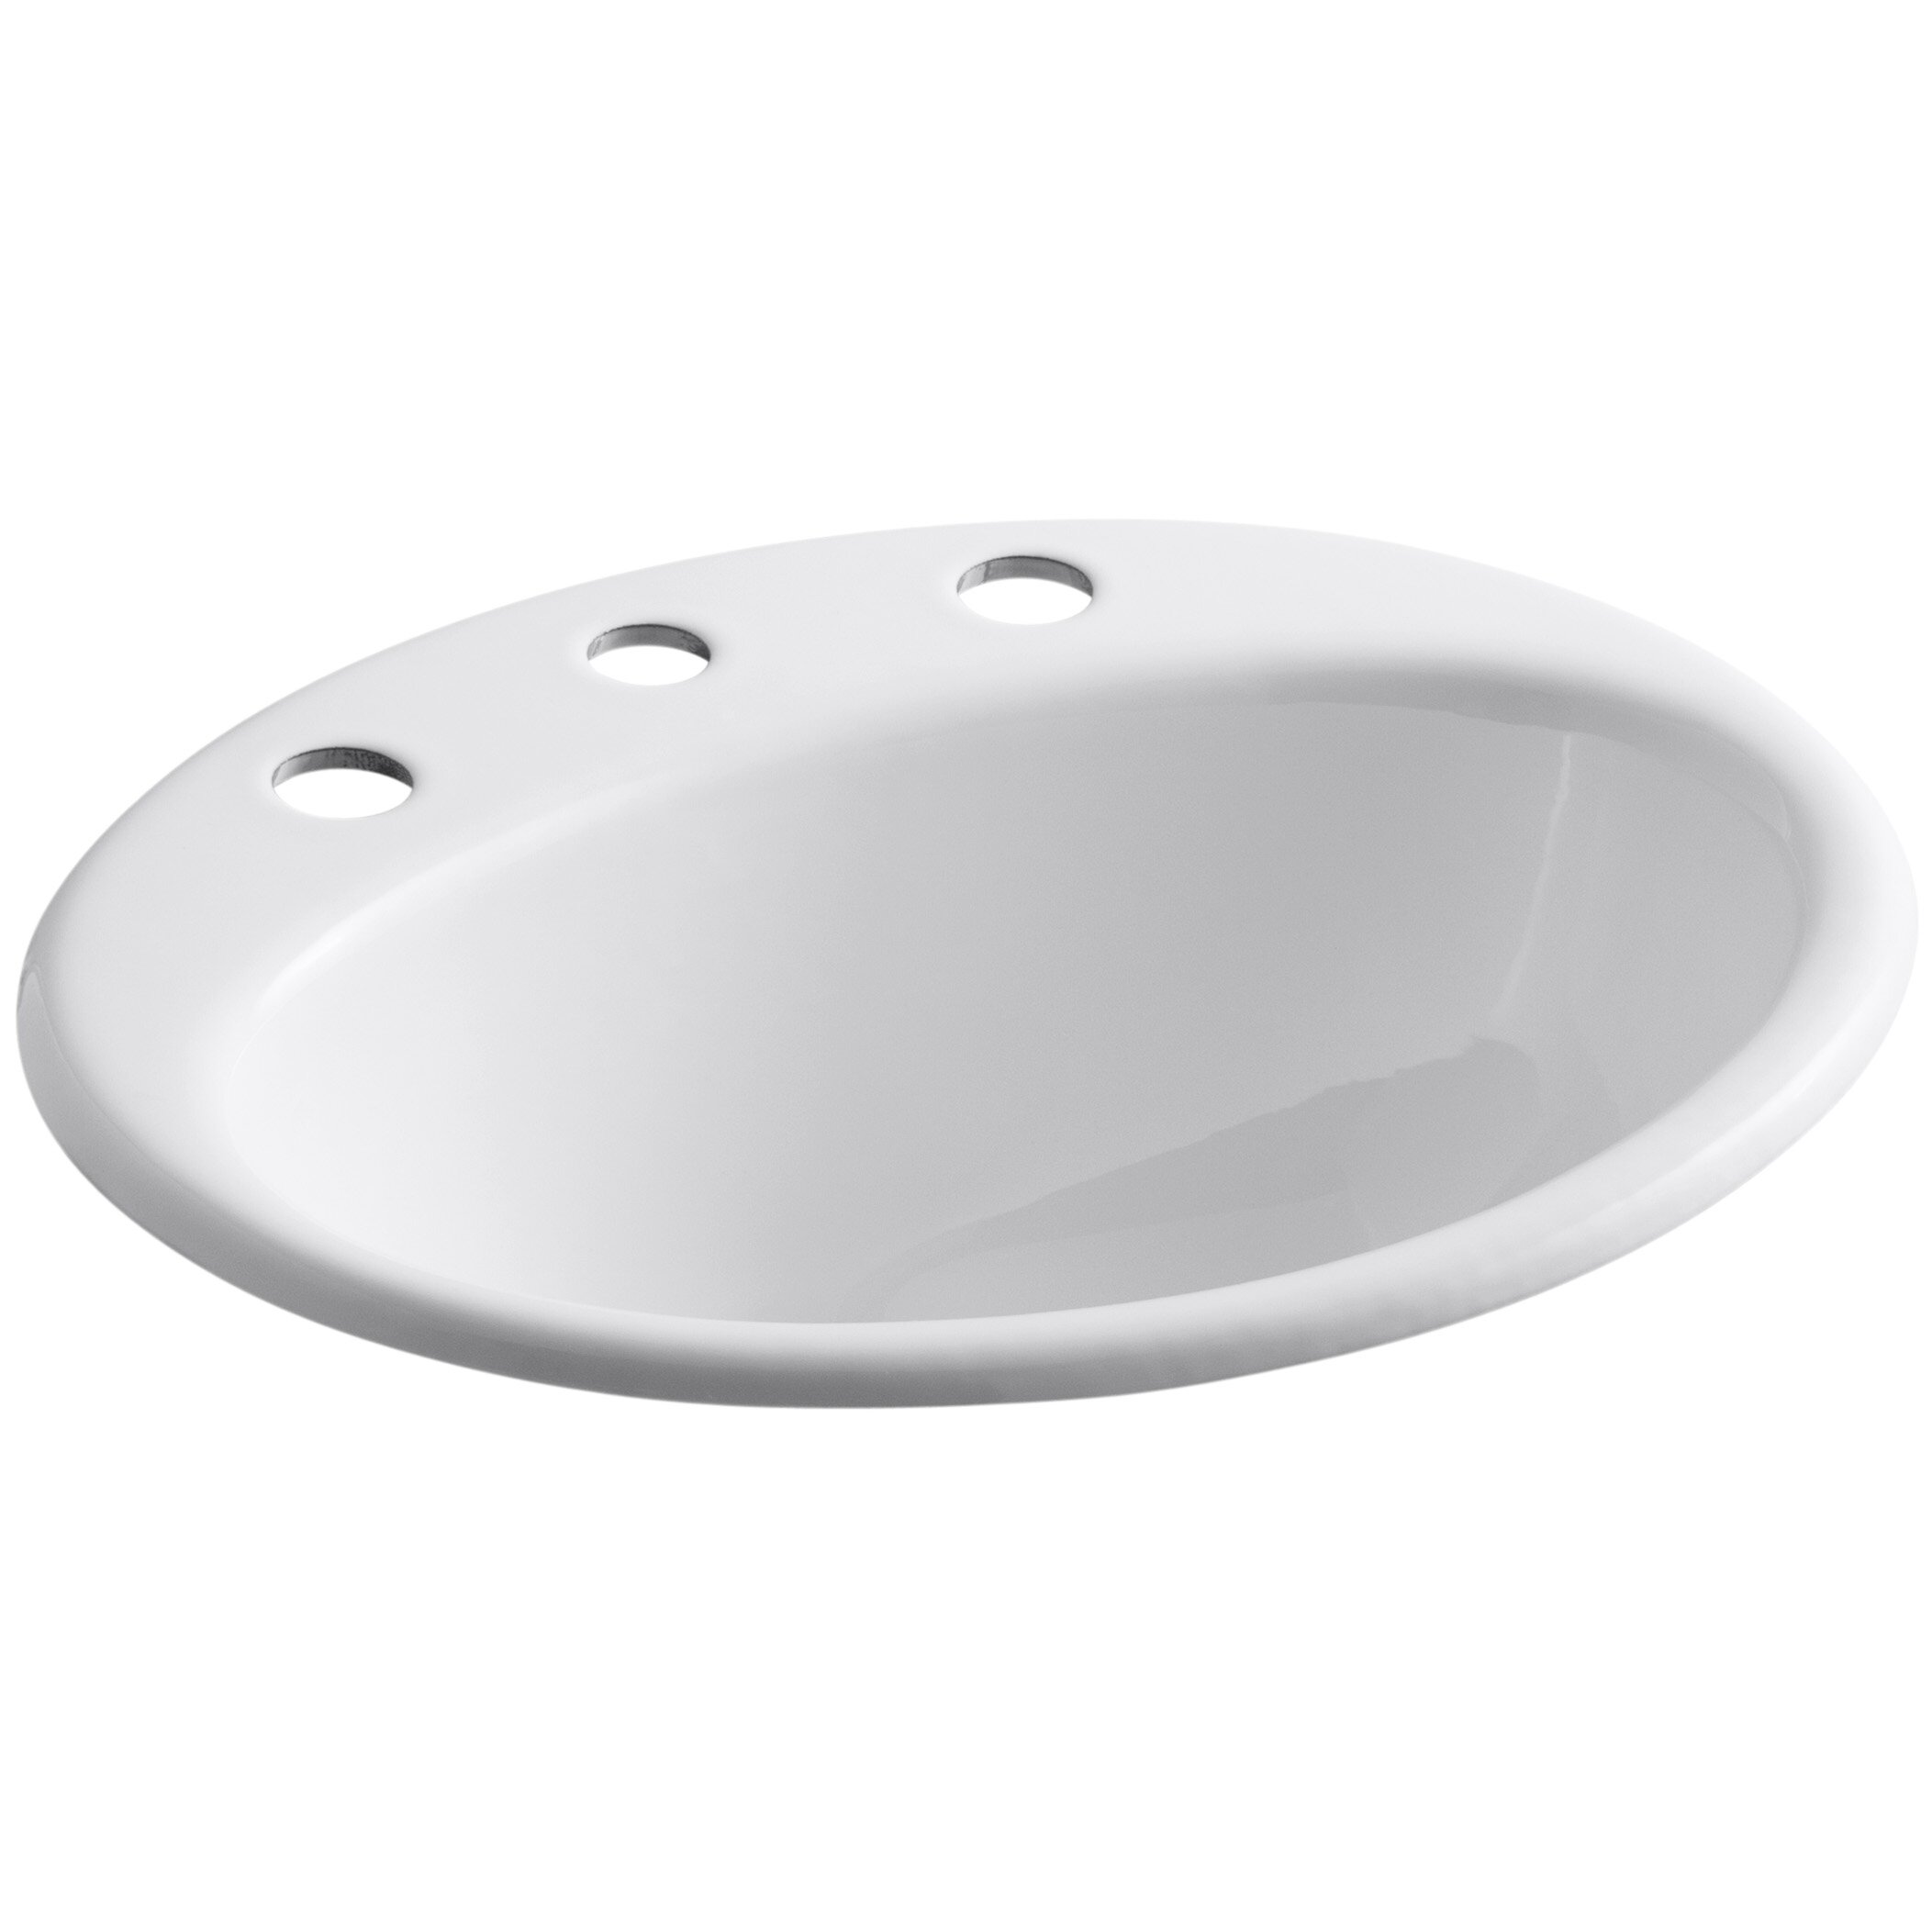 "Kohler Farmington Drop-In Bathroom Sink with 8"" Widespread ..."